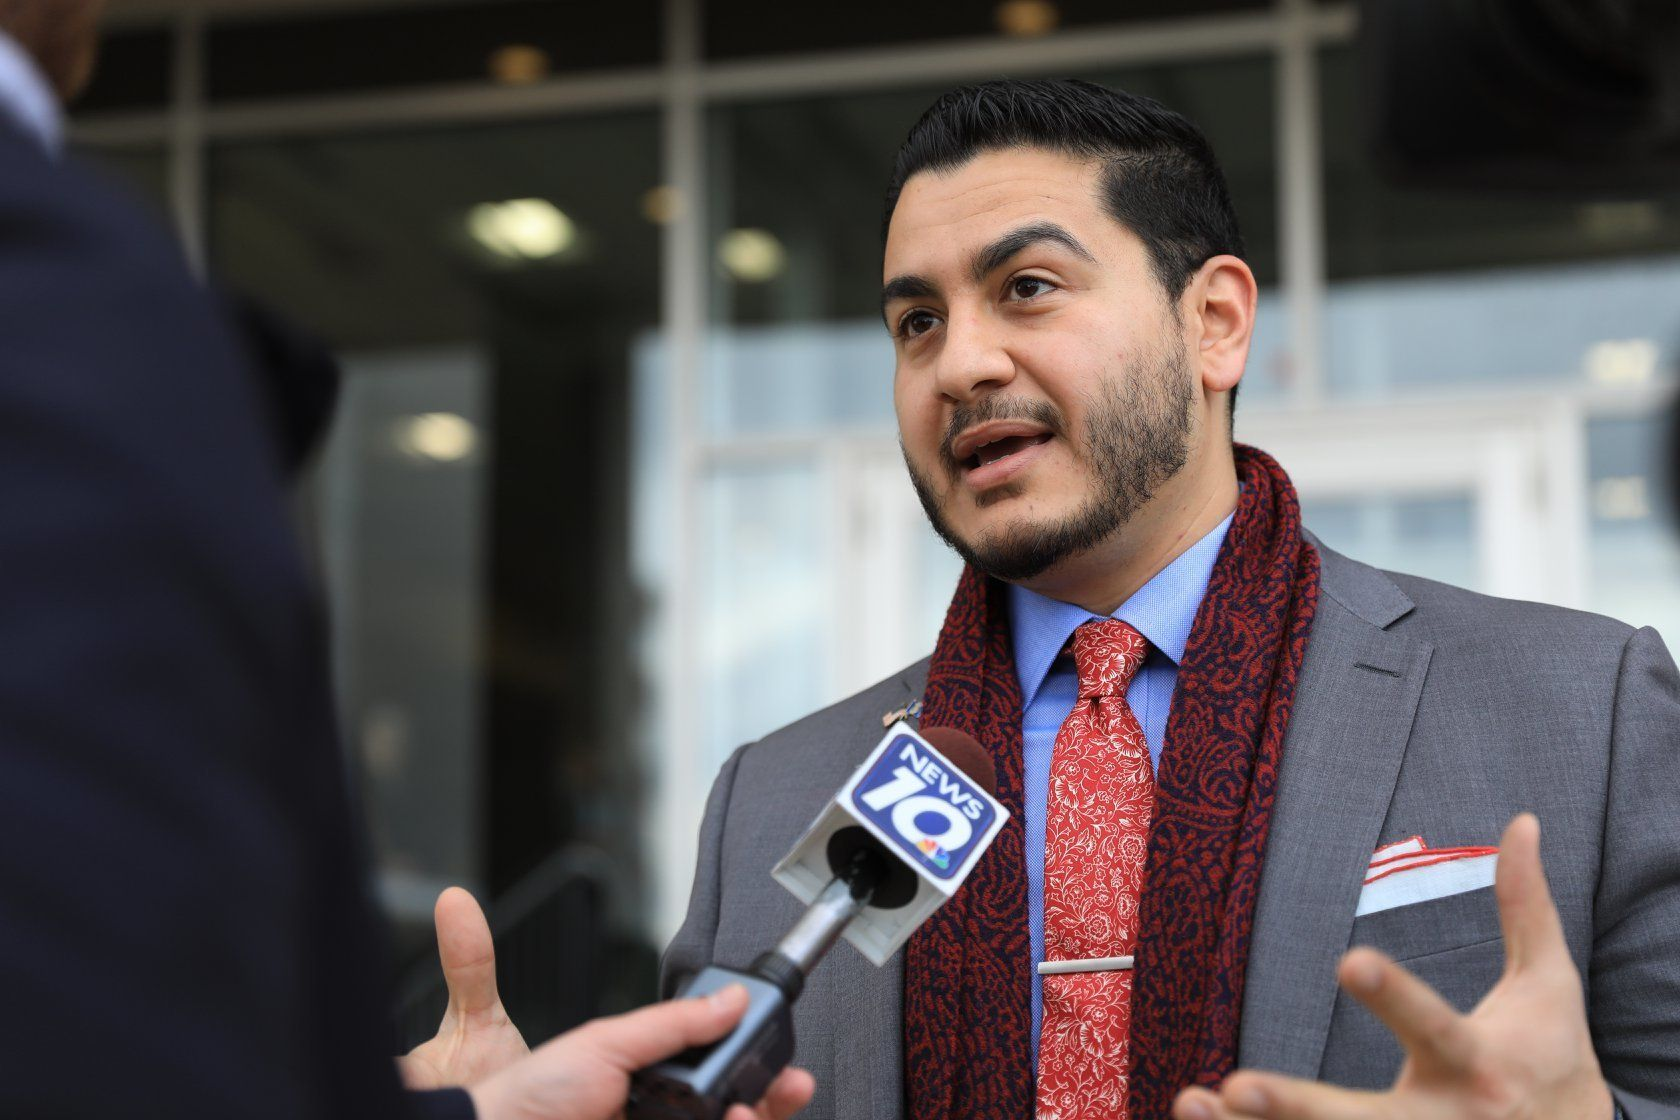 Democrat Abdul El-Sayed a physician running for Michigan governor has faced baseless accusations of ties to the Muslim Brotherhood